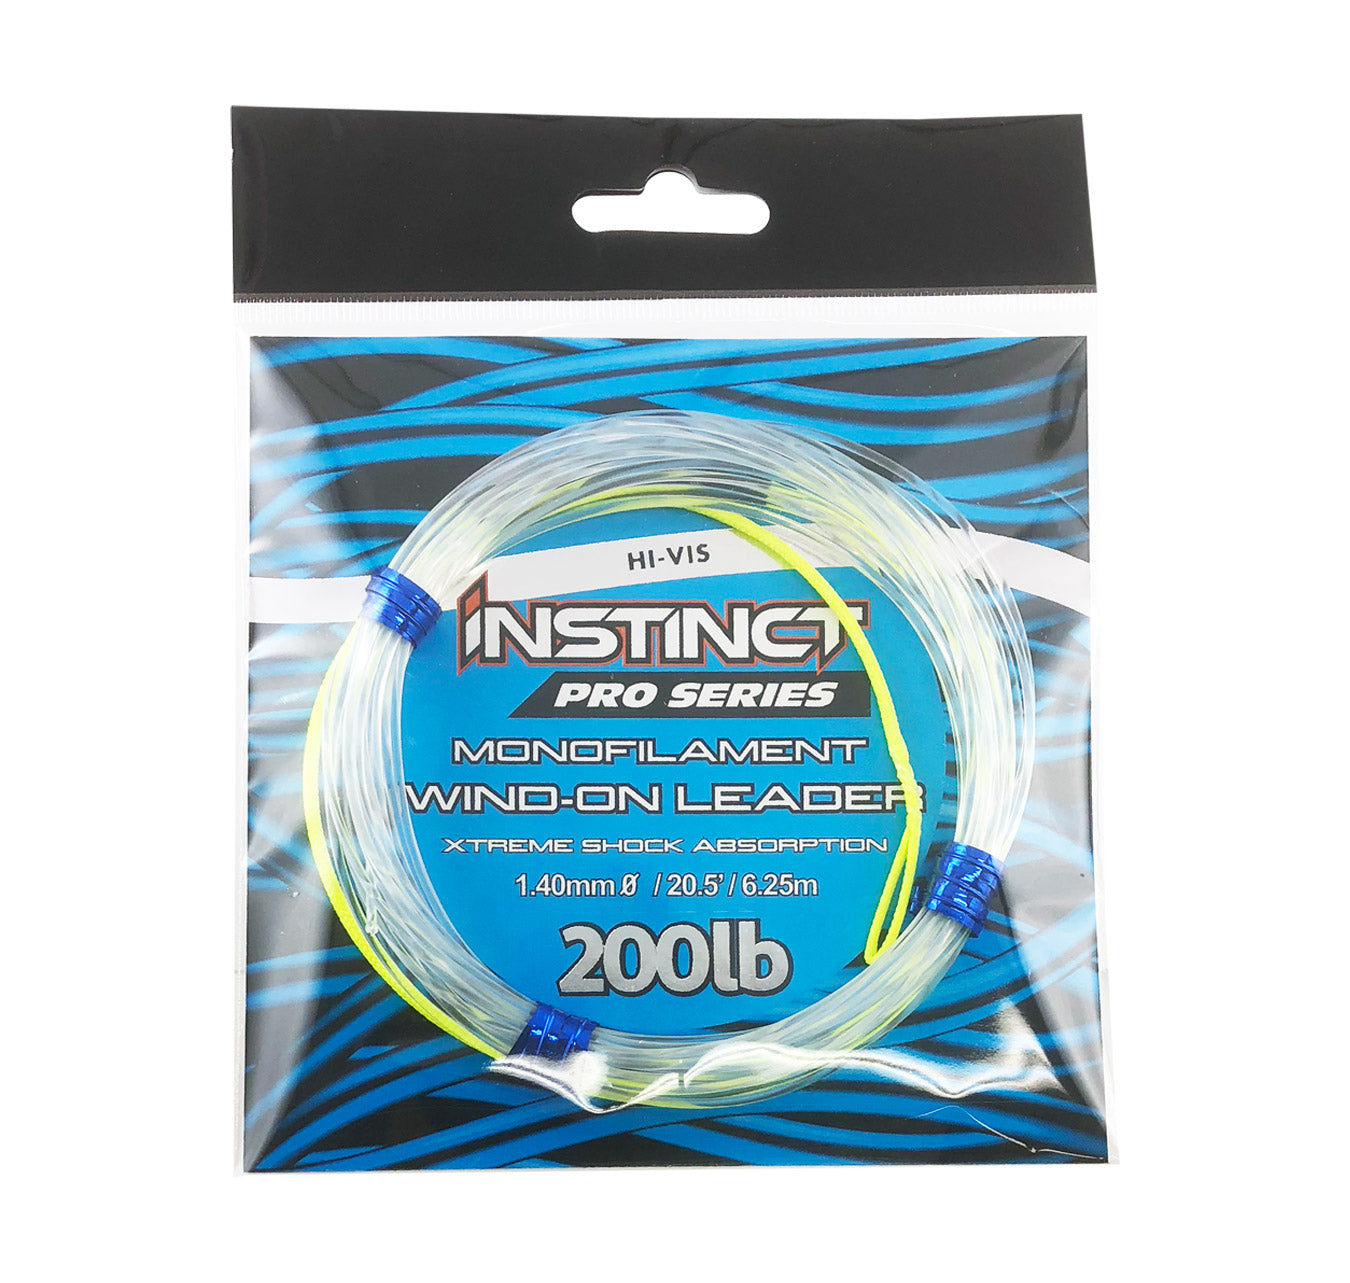 Instinct Pro Series Monofilament Wind-On Leader